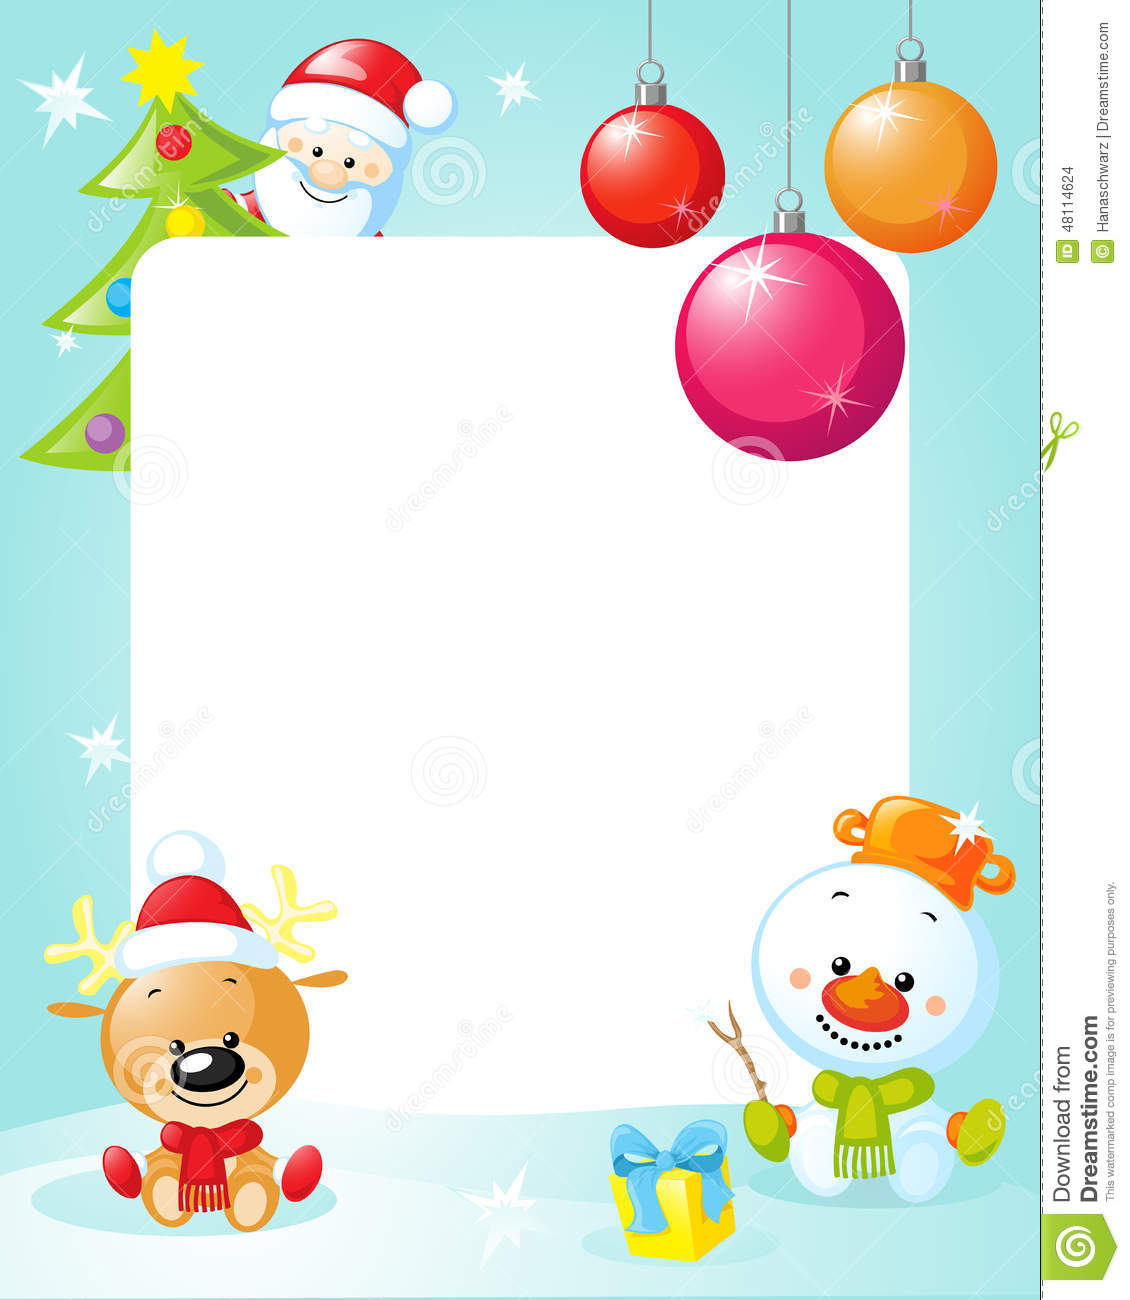 Download Christmas Frame With Snowman Xmas Tree Ball And Reindeer Stock Vector